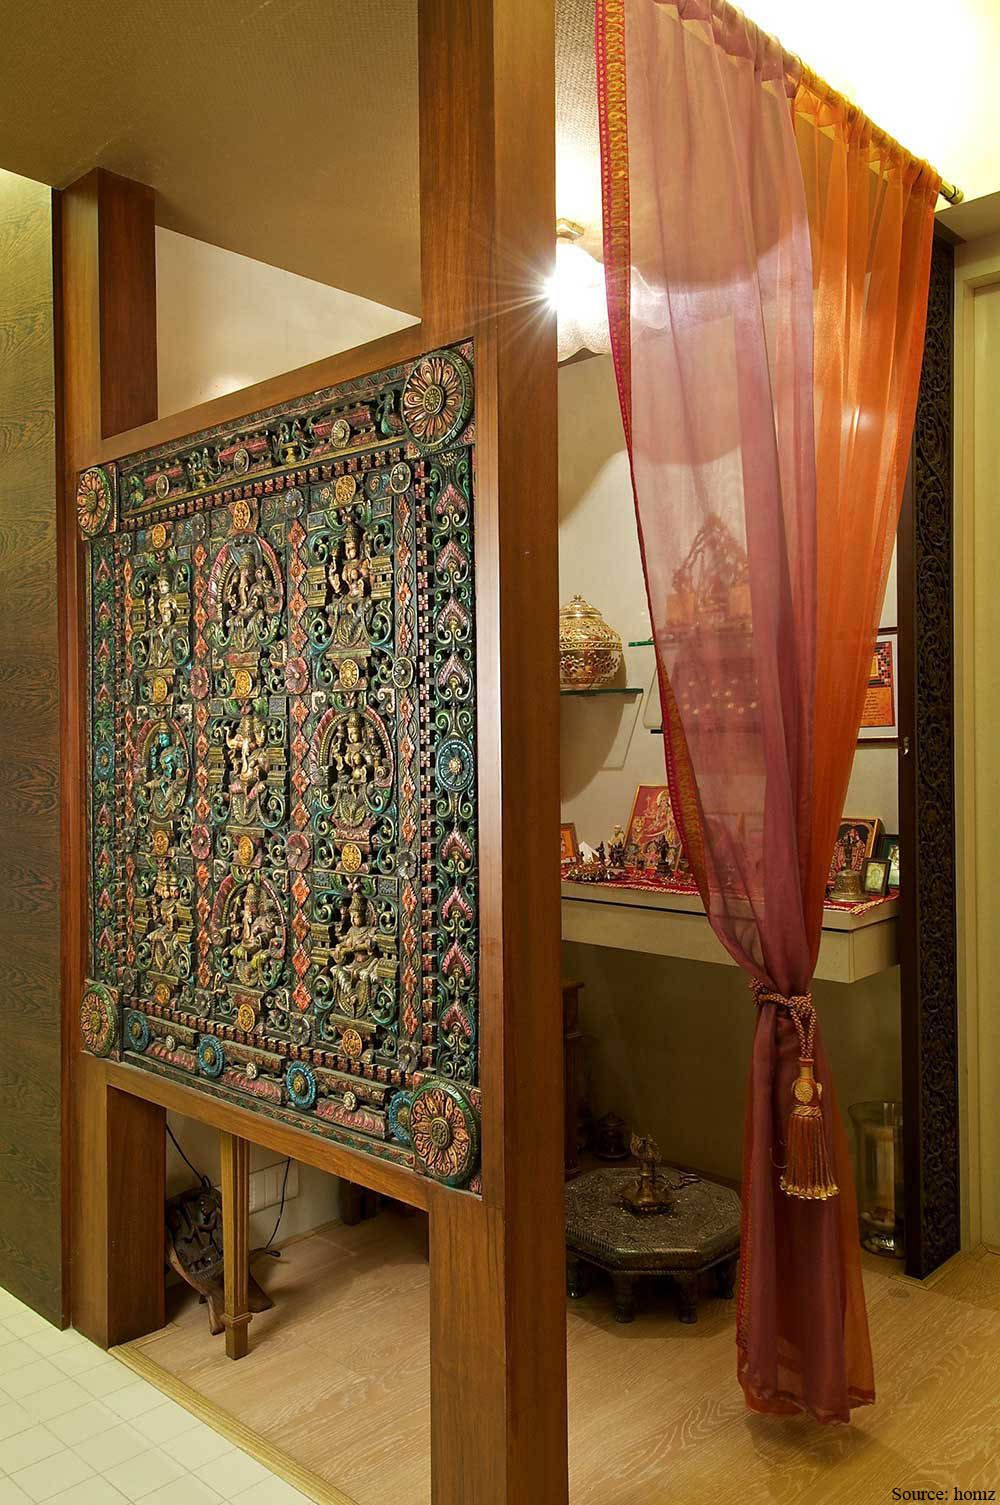 red curtain in the puja room with carving on the wooden Altar